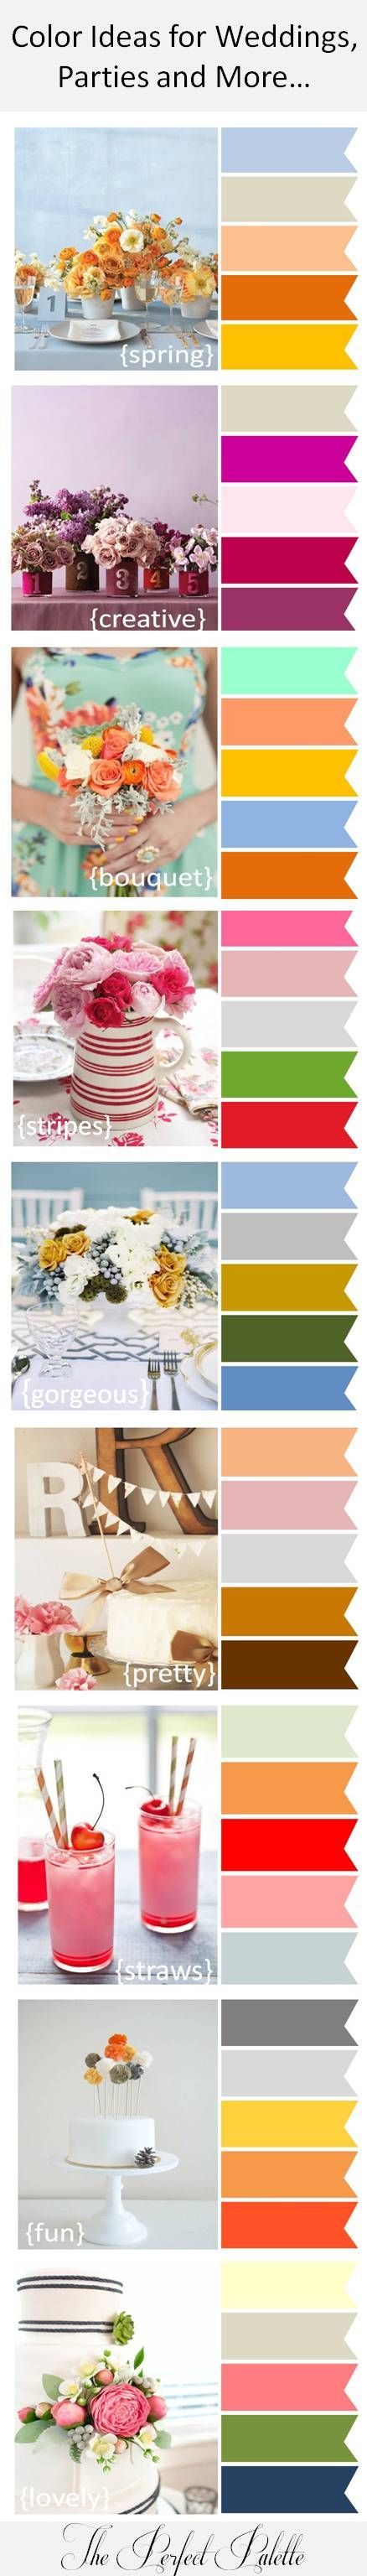 {Color Ideas for Weddings, Parties and More...} http://www.theperfectpalette.com/2012/09/color-ideas-for-weddings-parties-and.html